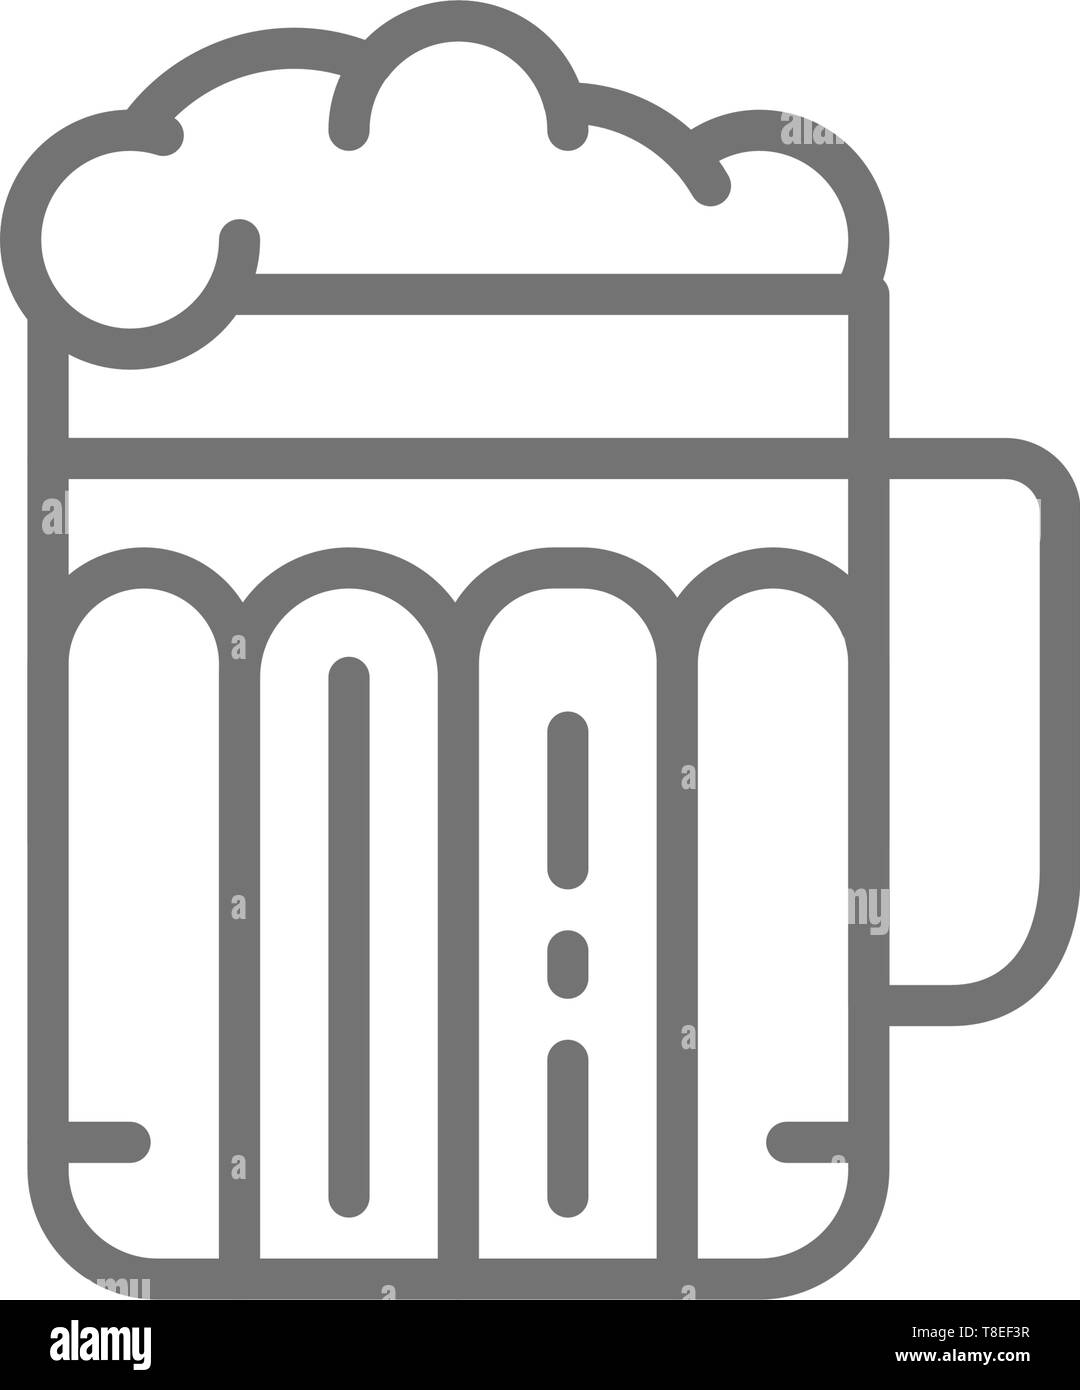 Pint of beer, alcohol, glass with drink line icon. - Stock Image